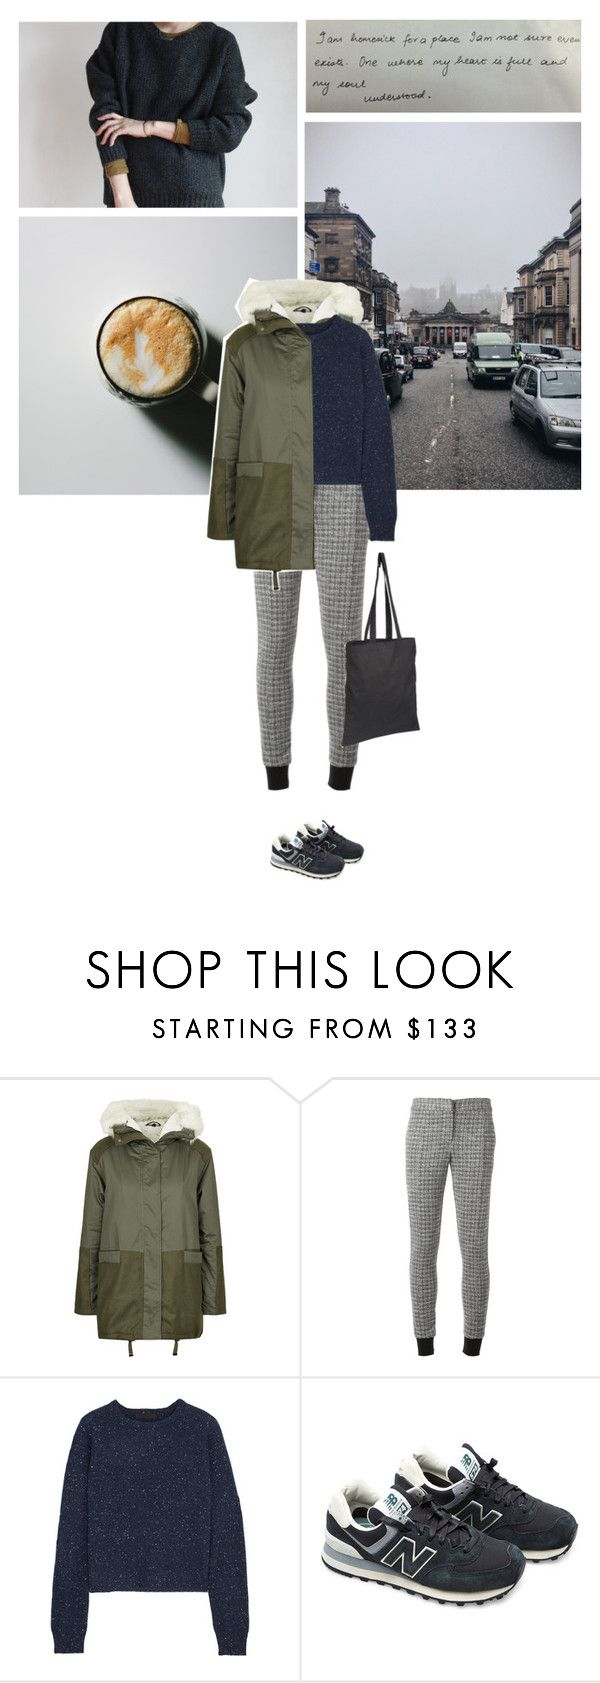 """""""""""I remained too much inside my head and ended up losing my mind."""" -Edgar Allan Poe"""" by are-you-with-me ❤ liked on Polyvore featuring Topshop, Thakoon Addition, Alexander Wang and New Balance"""